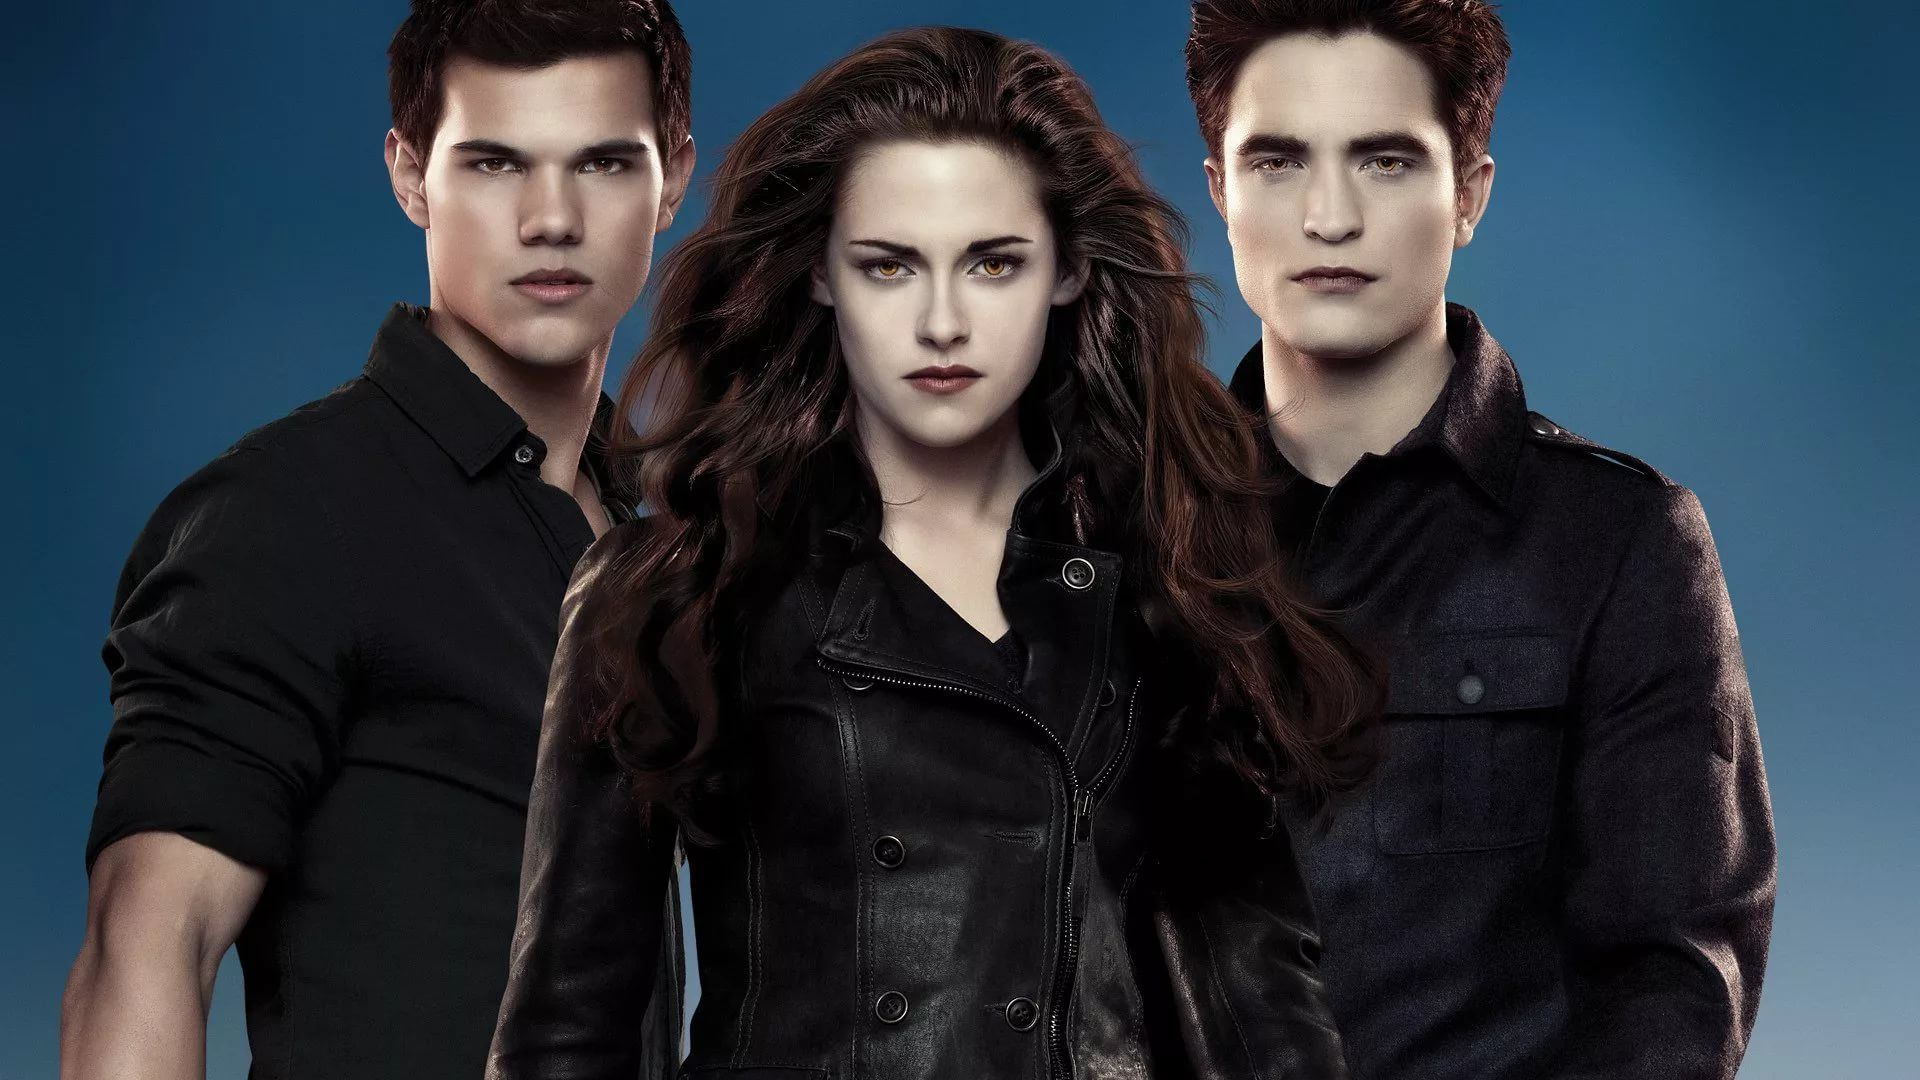 Twilight Saga download nice wallpaper